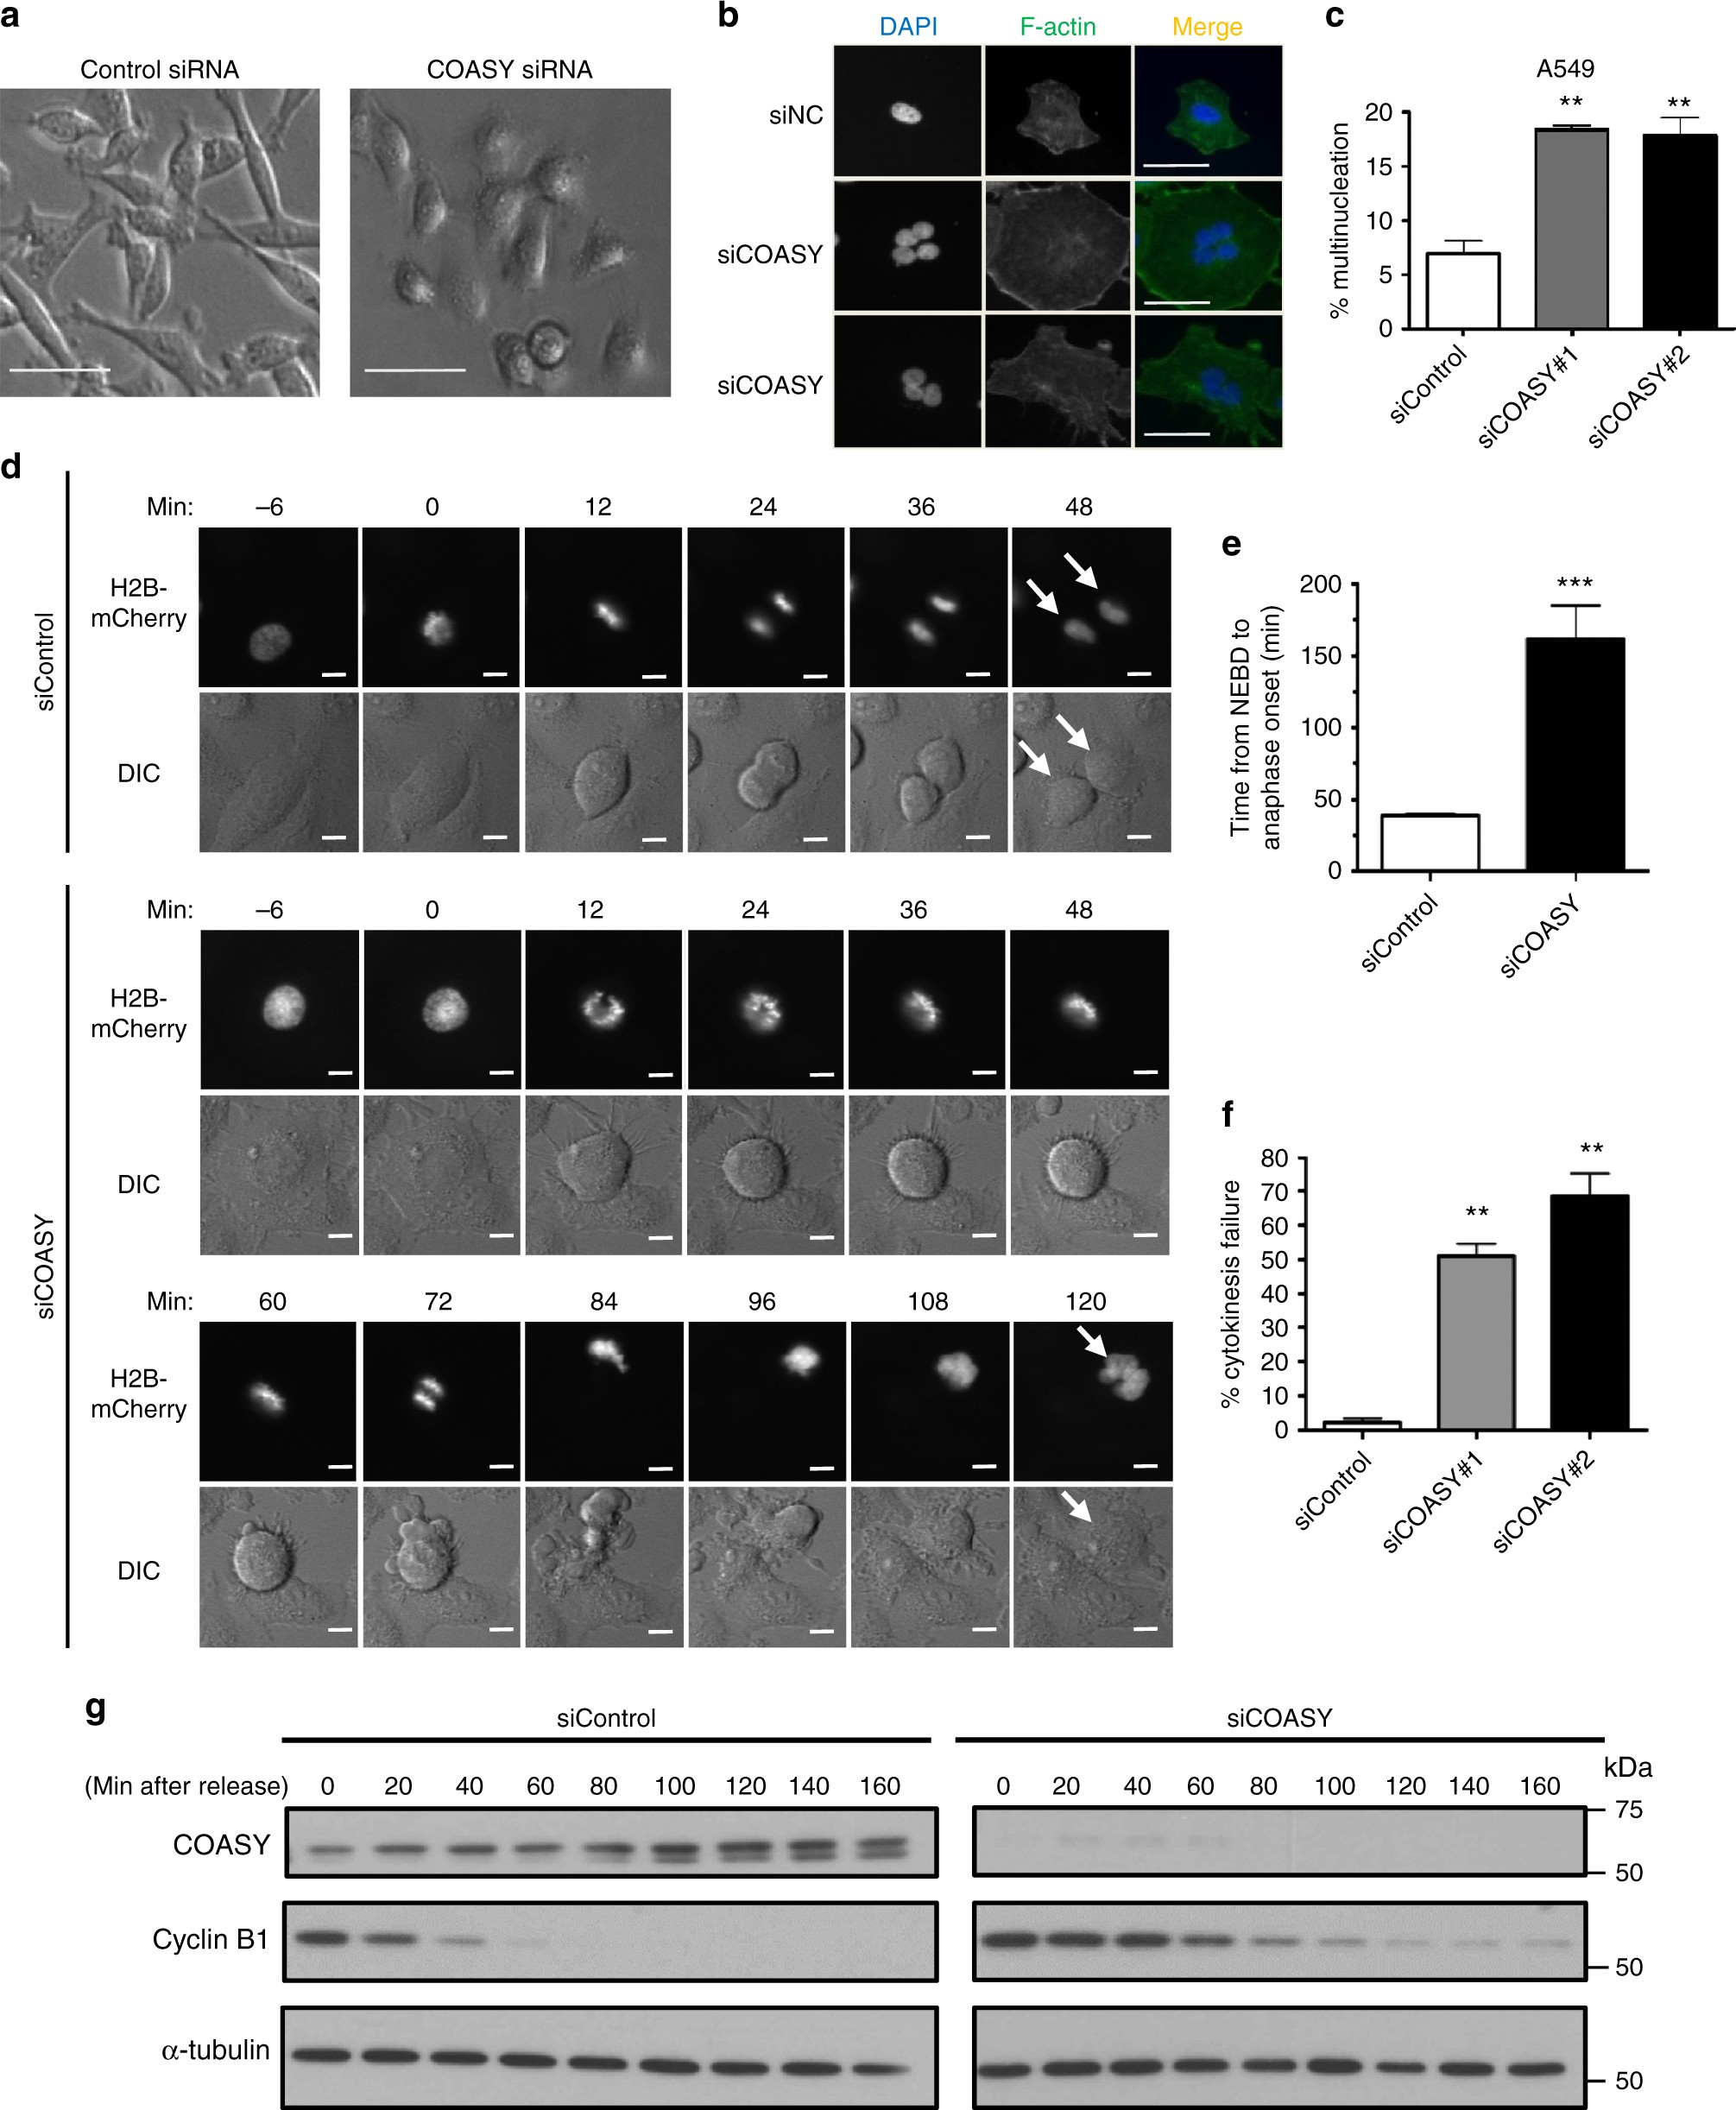 CoA synthase regulates mitotic fidelity via CBP-mediated acetylation